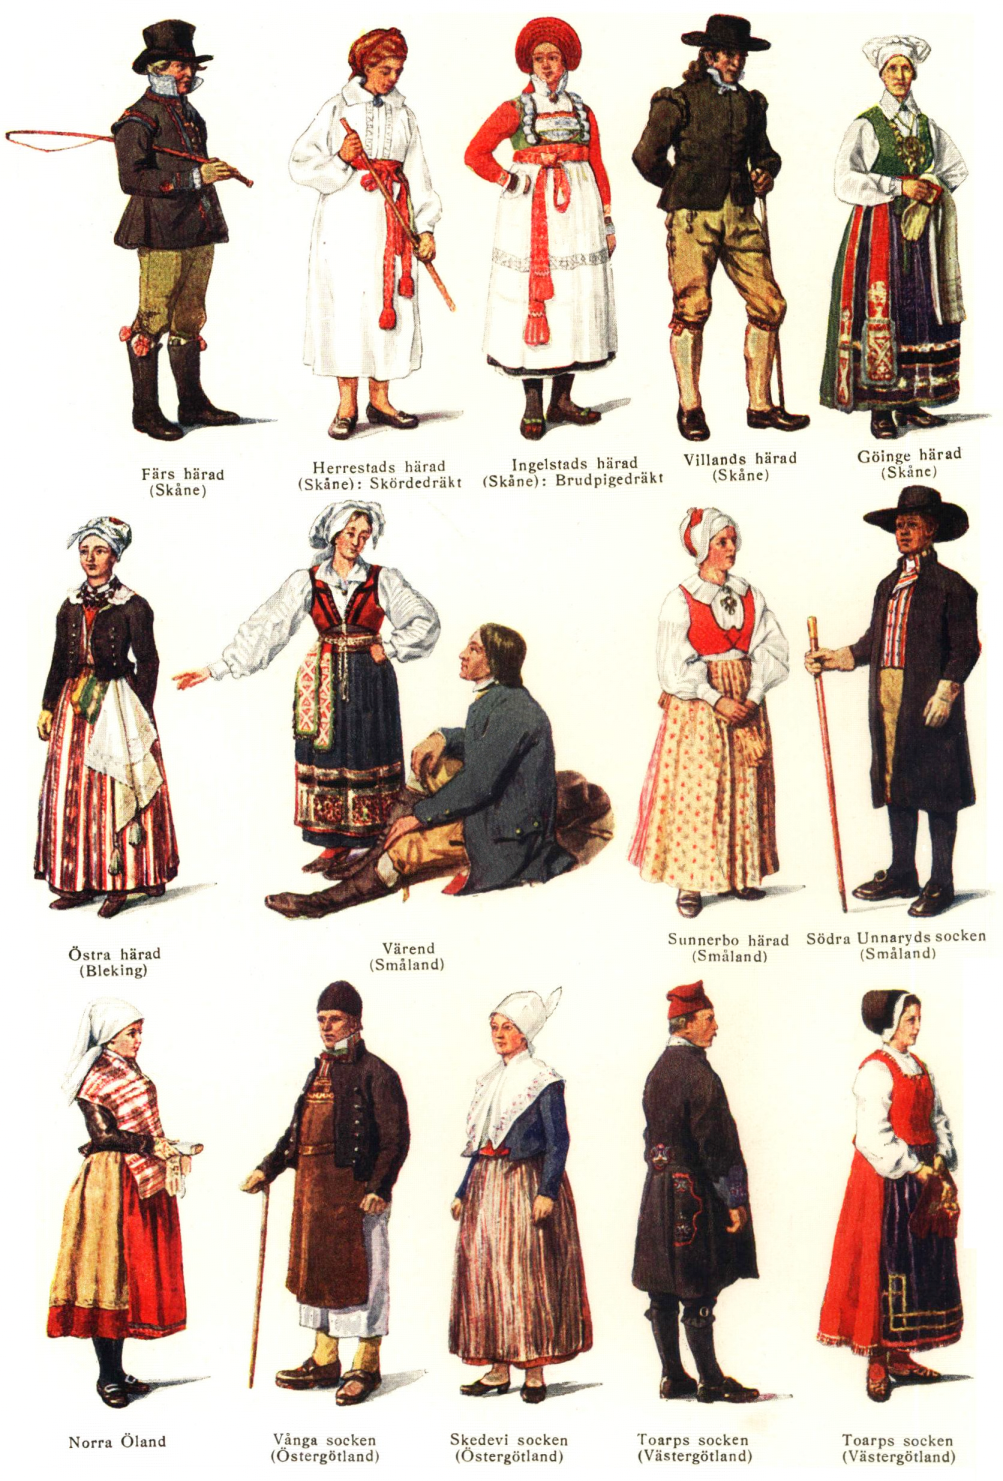 http://upload.wikimedia.org/wikipedia/commons/f/f6/Swedish_national_costumes_1.png